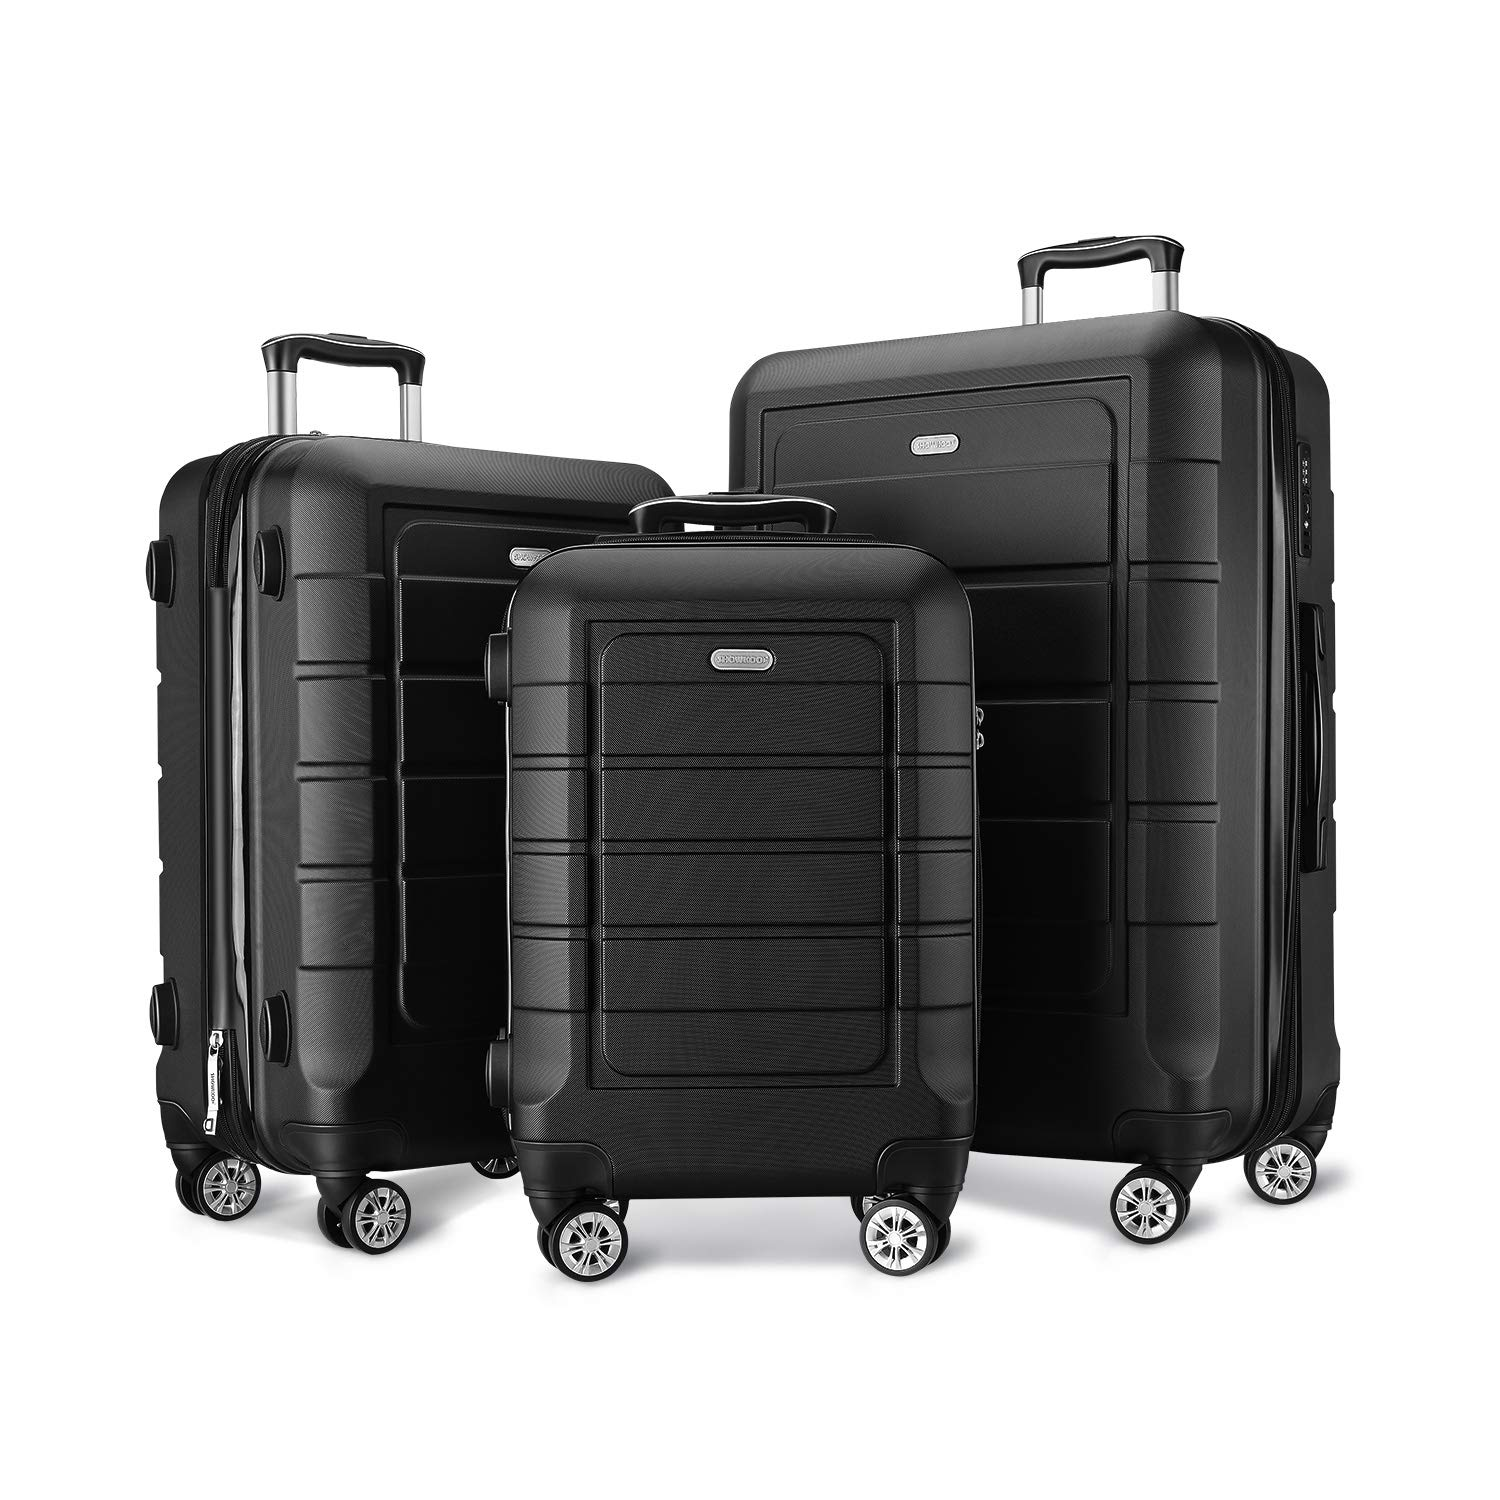 SHOWKOO Expandable Luggage Set, 3-Piece